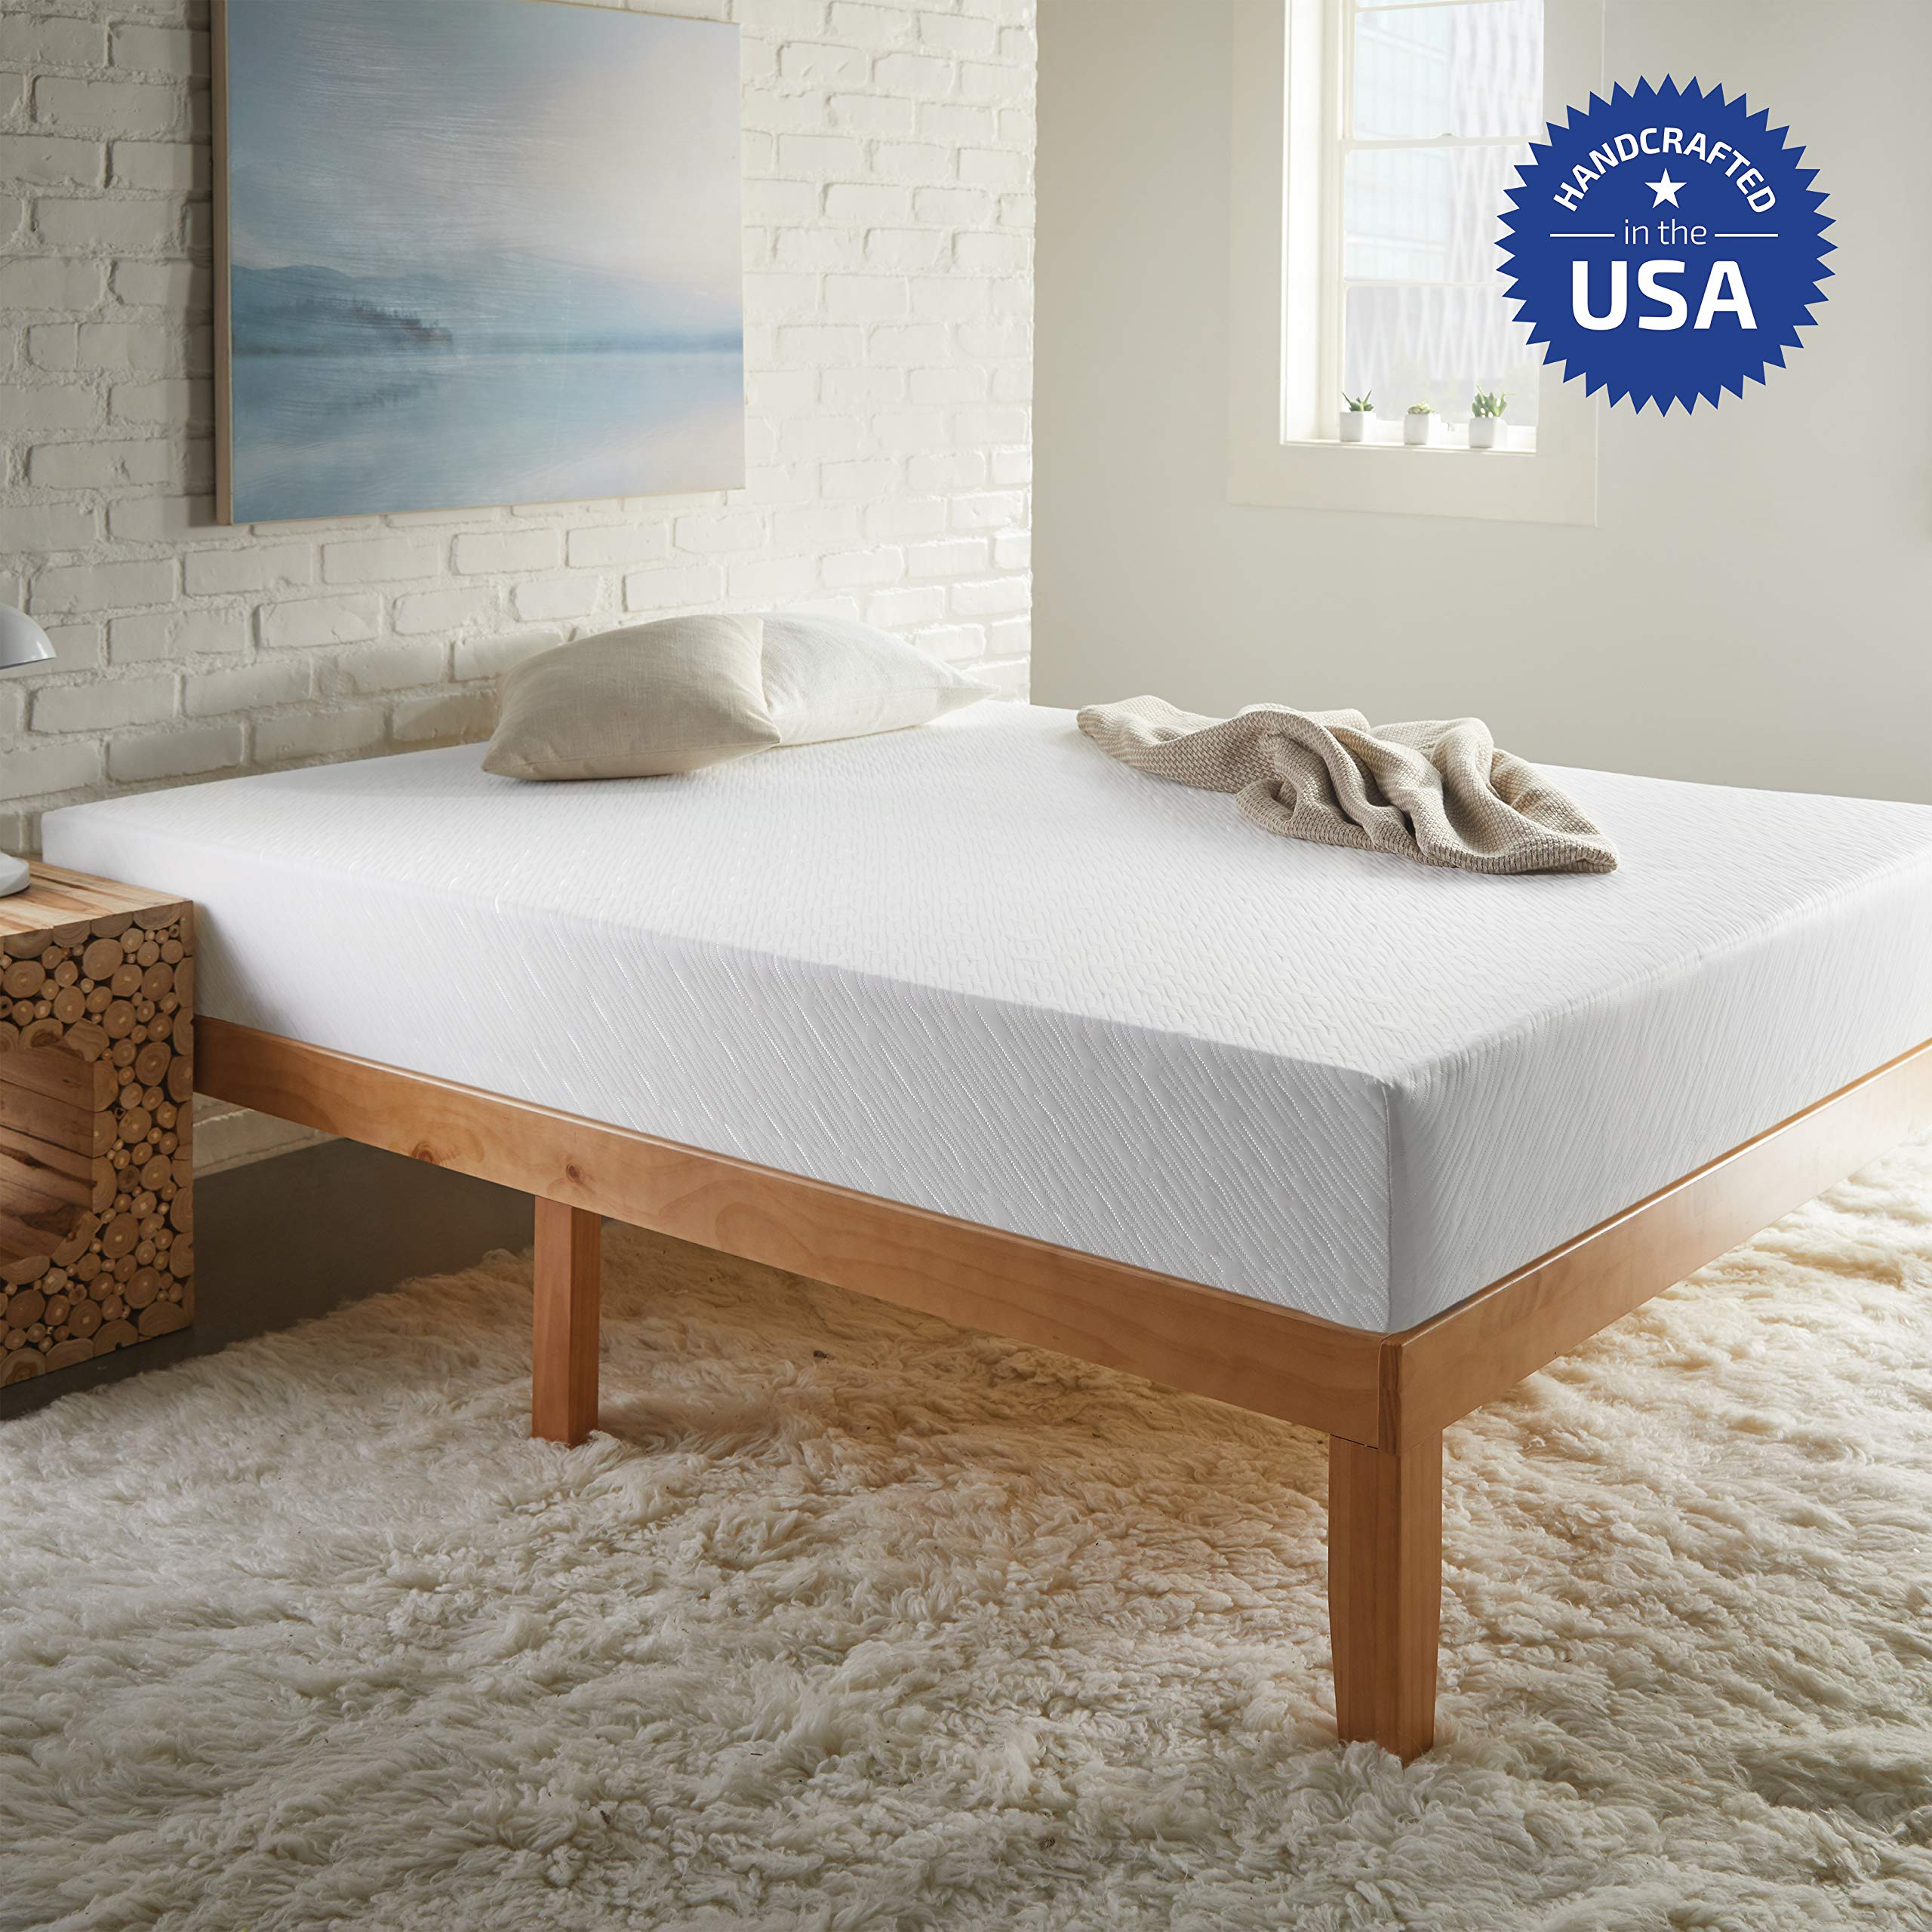 SLEEPINC. 8-Inch Memory Foam Mattress, Comfort Body Support, Bed in Box, Medium Firm, Sleeps Cool, No Harmful Chemicals, Handcrafted in The USA, Twin by SLEEPINC.